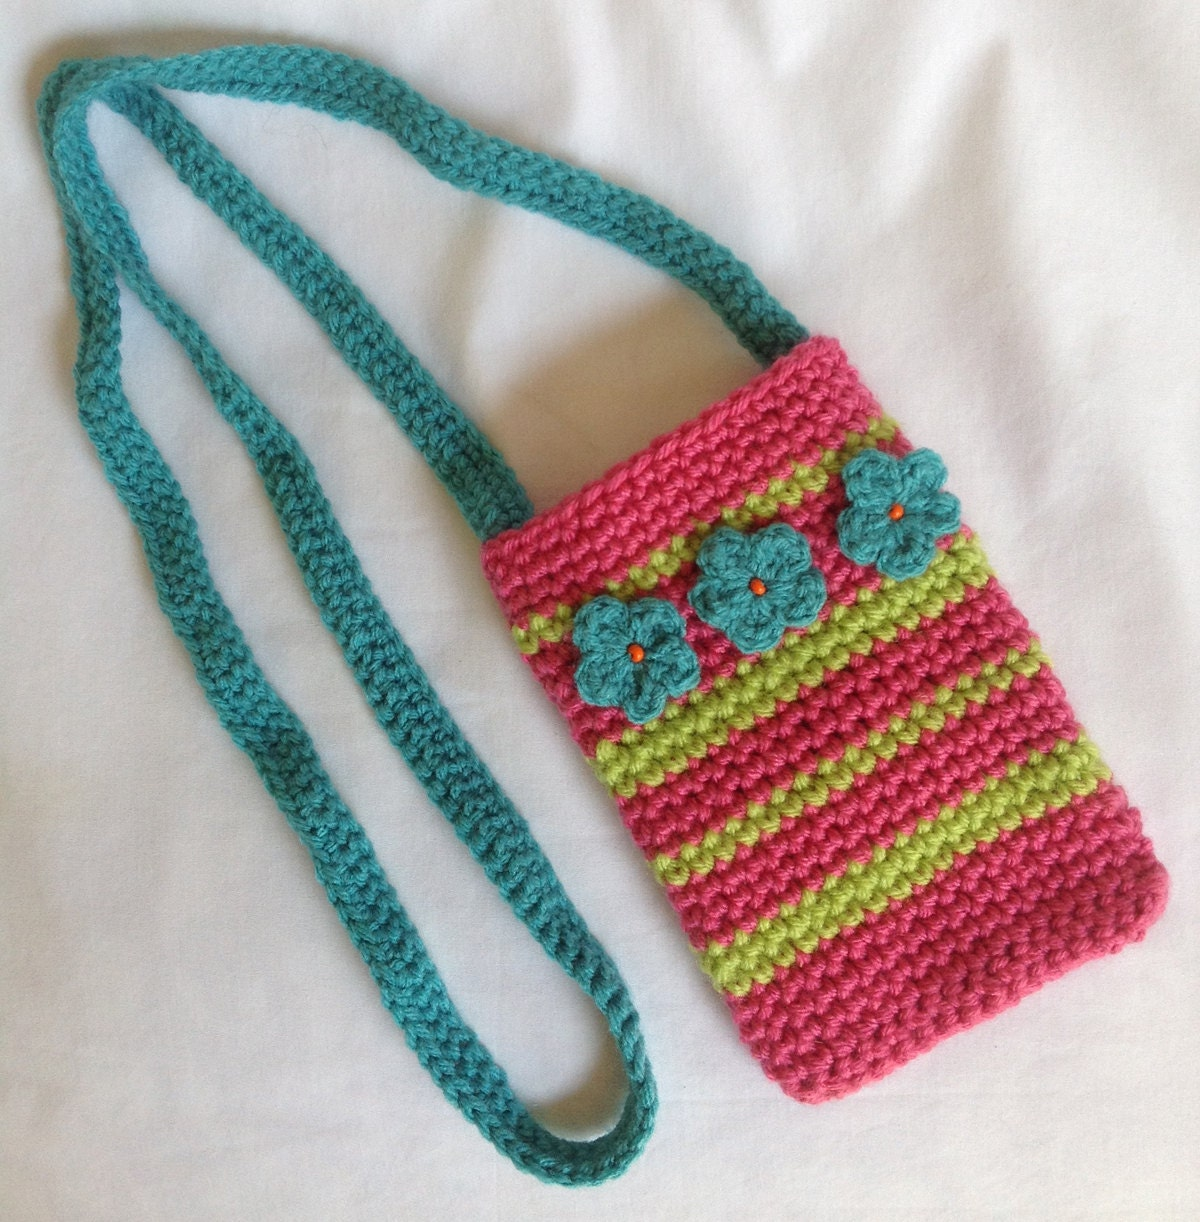 Crochet Crossbody Bright Crochet Cross Body Crossbody Bag